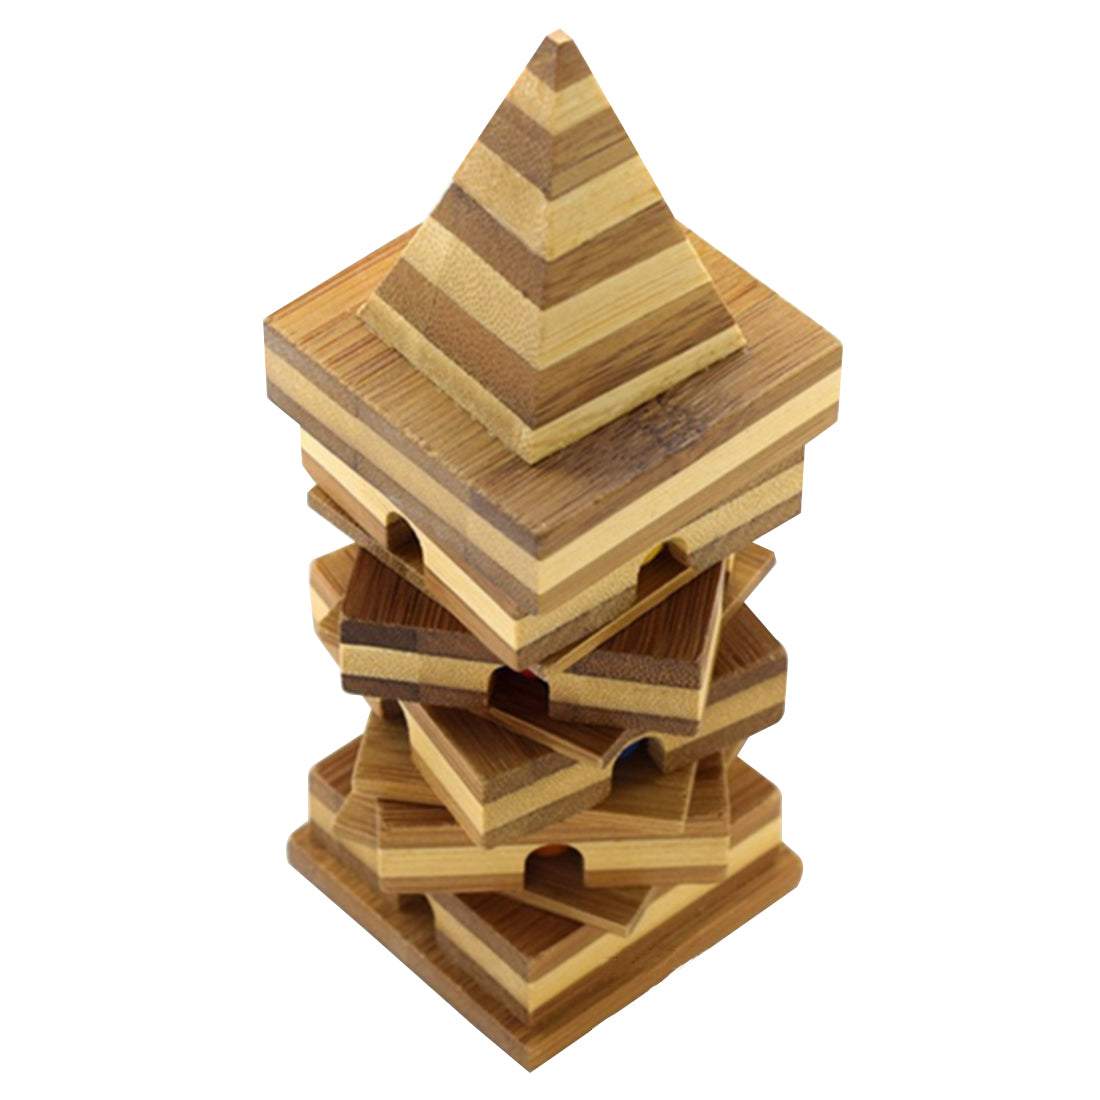 Bamboo Pyramid Design Kong Ming Lock Table Game Children Learning Educational Toys